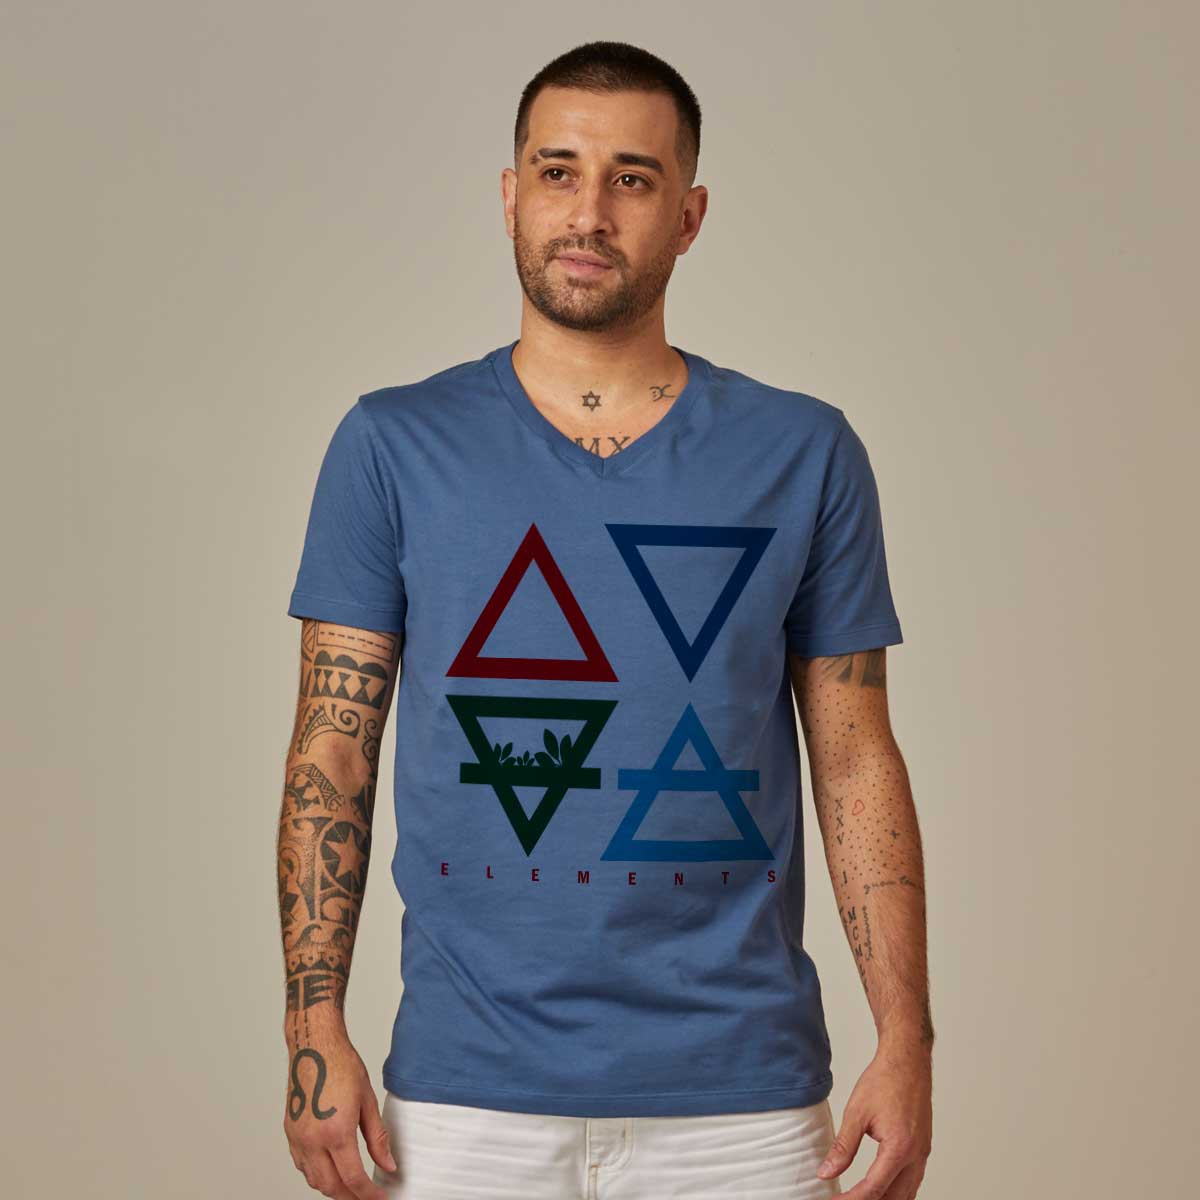 Comfort Cotton Men's V-neck T-shirt - 4 Elements